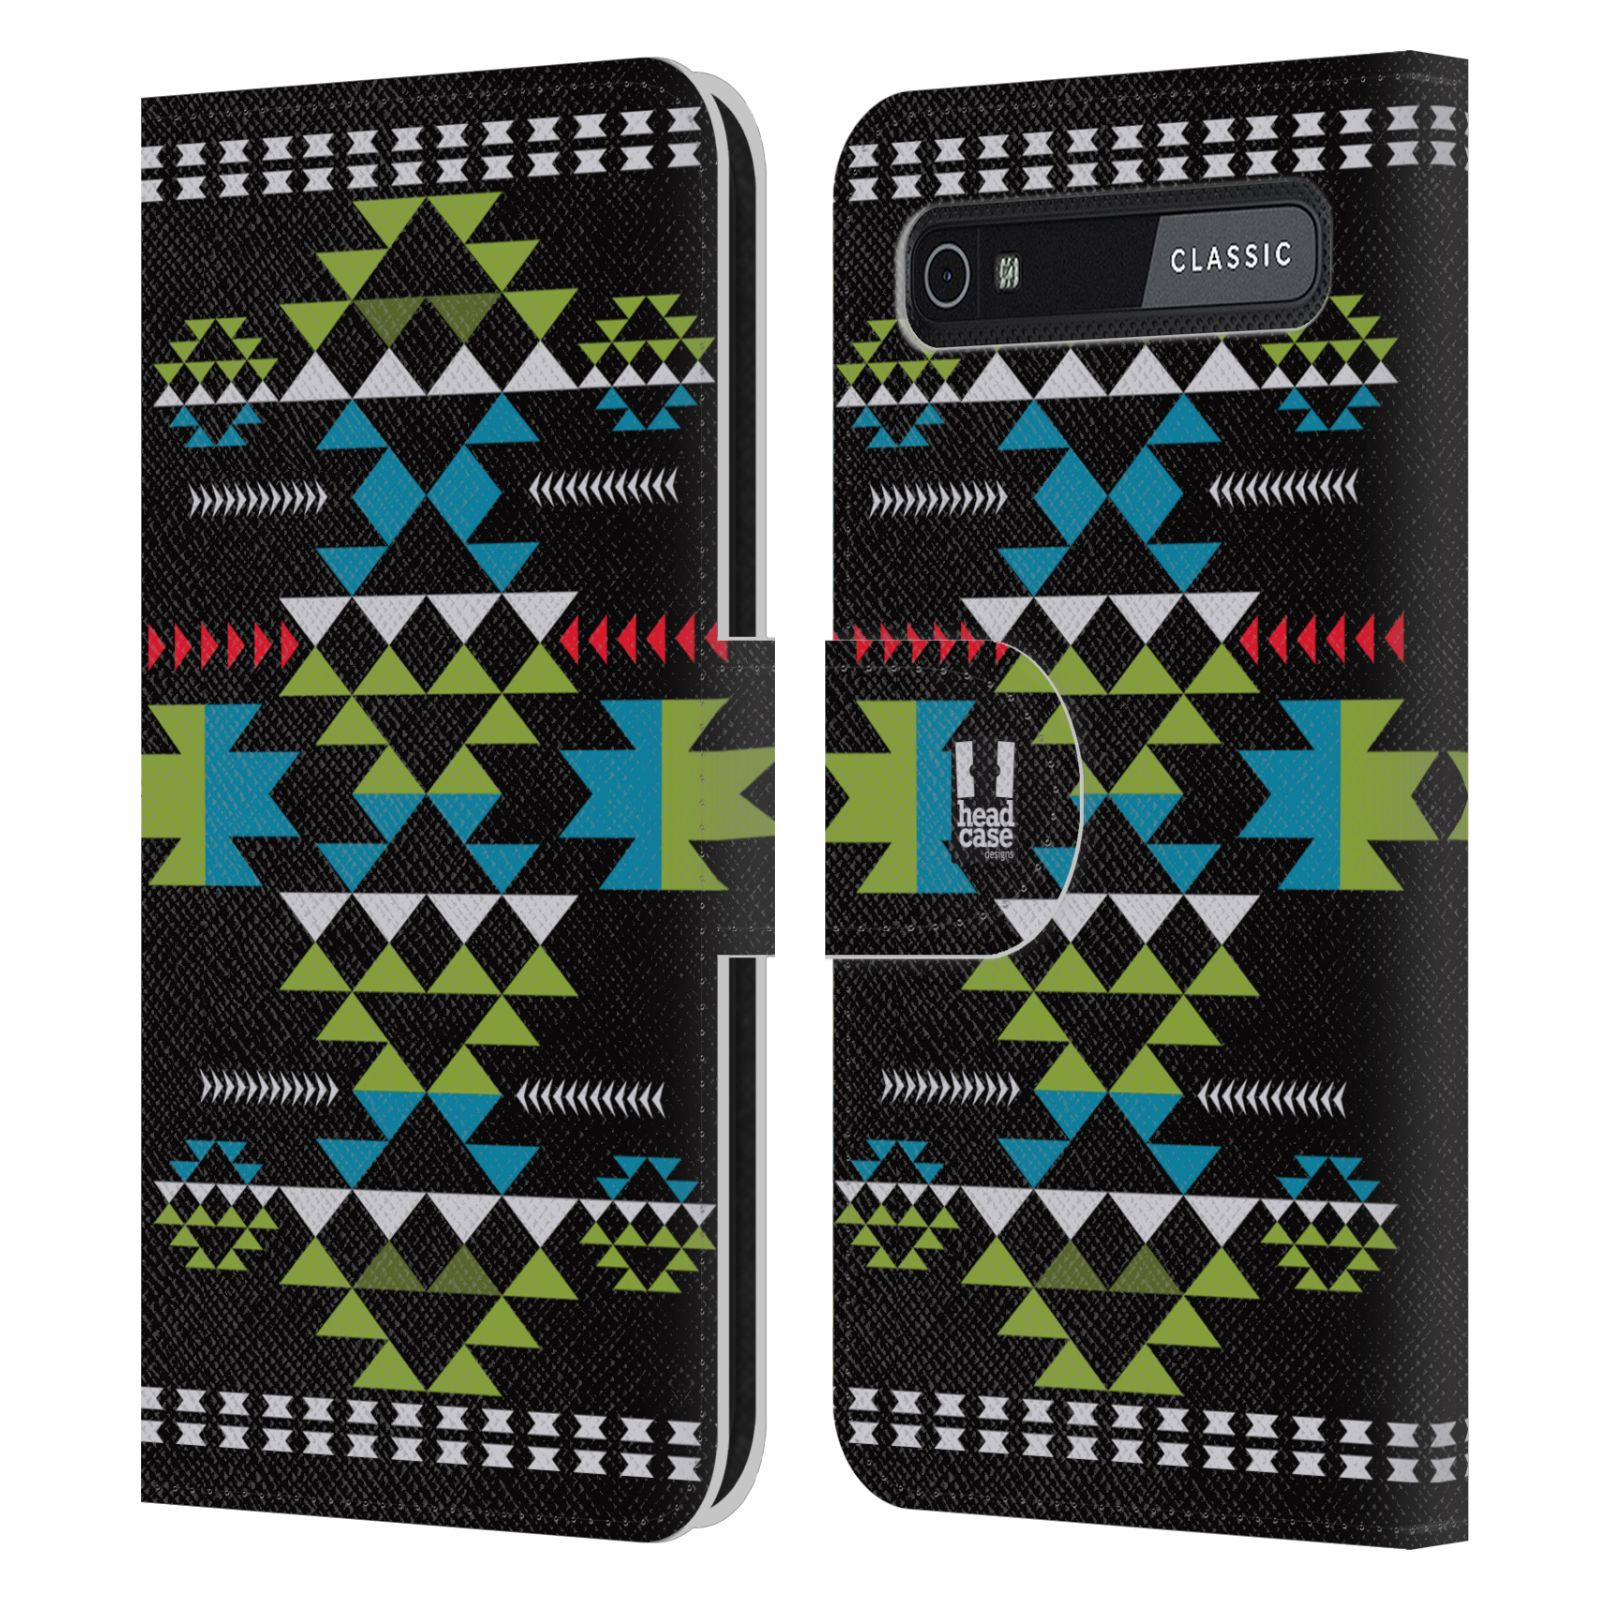 Book Cover Black Berry : Head case designs neo navajo leather book wallet for